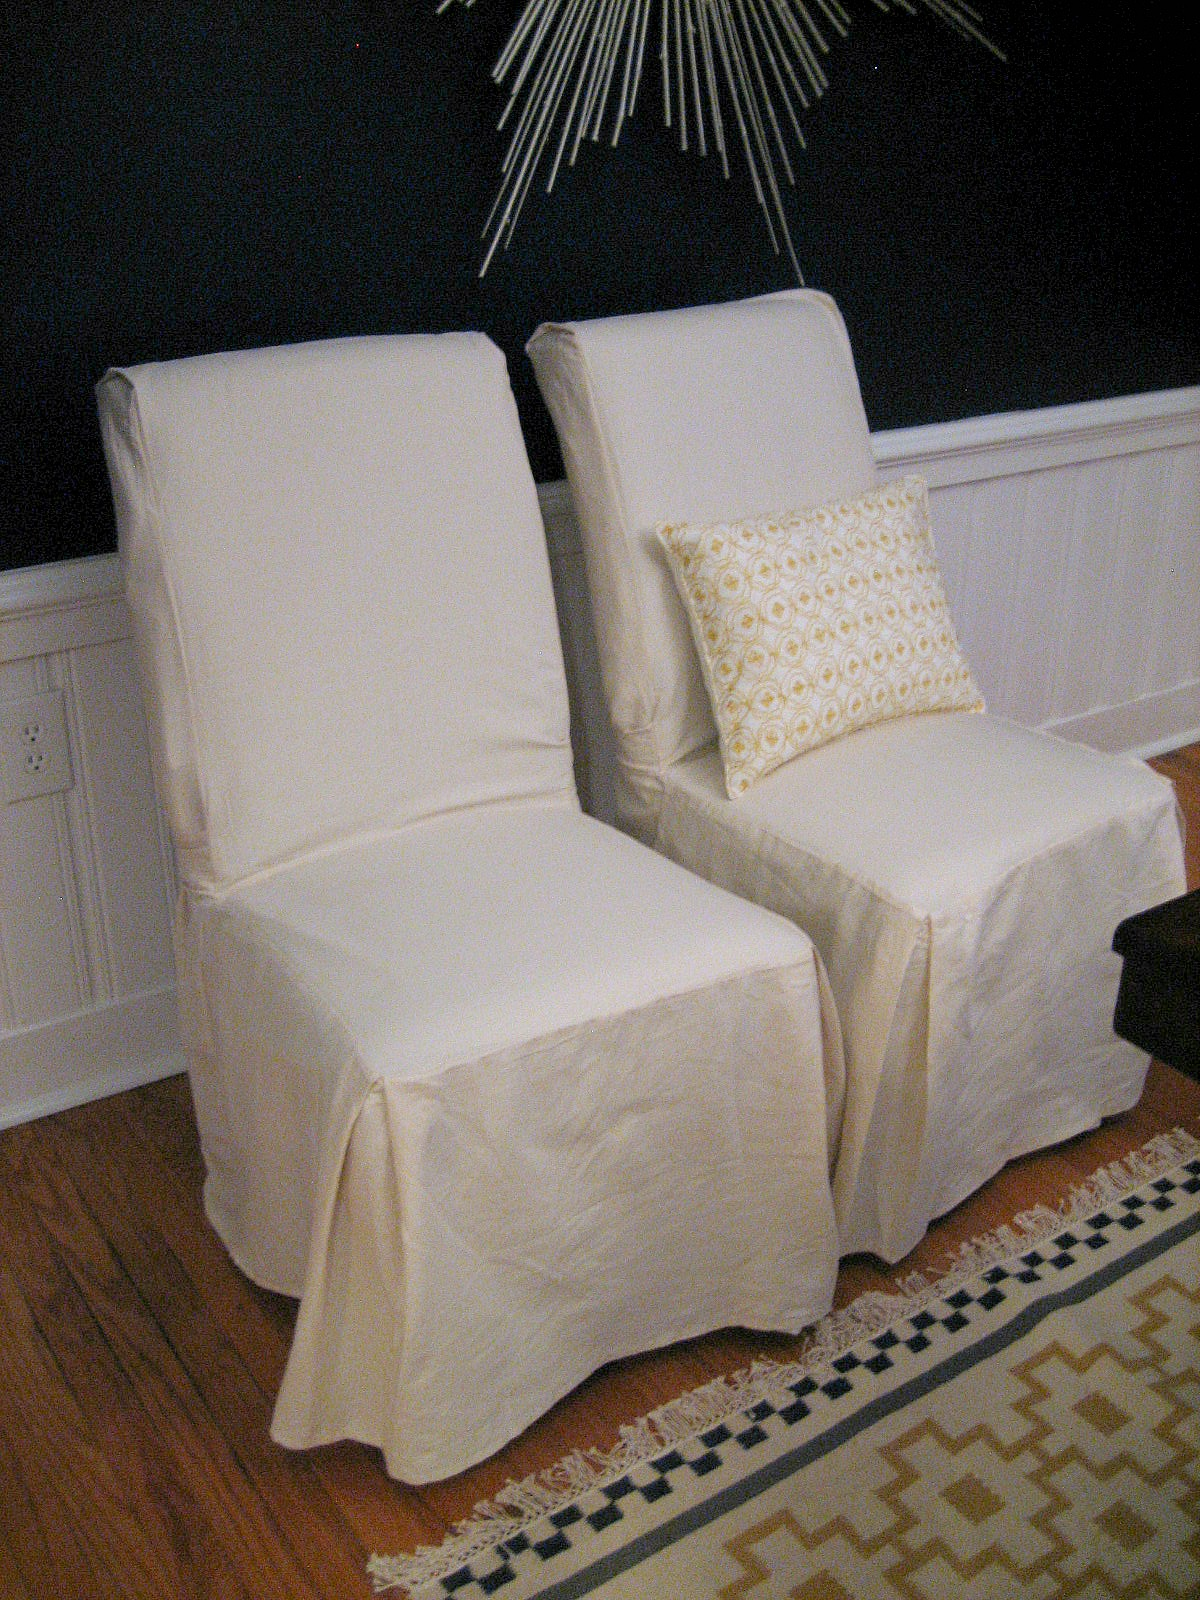 Attirant Double White Parson Chair Slipcovers With Pillow